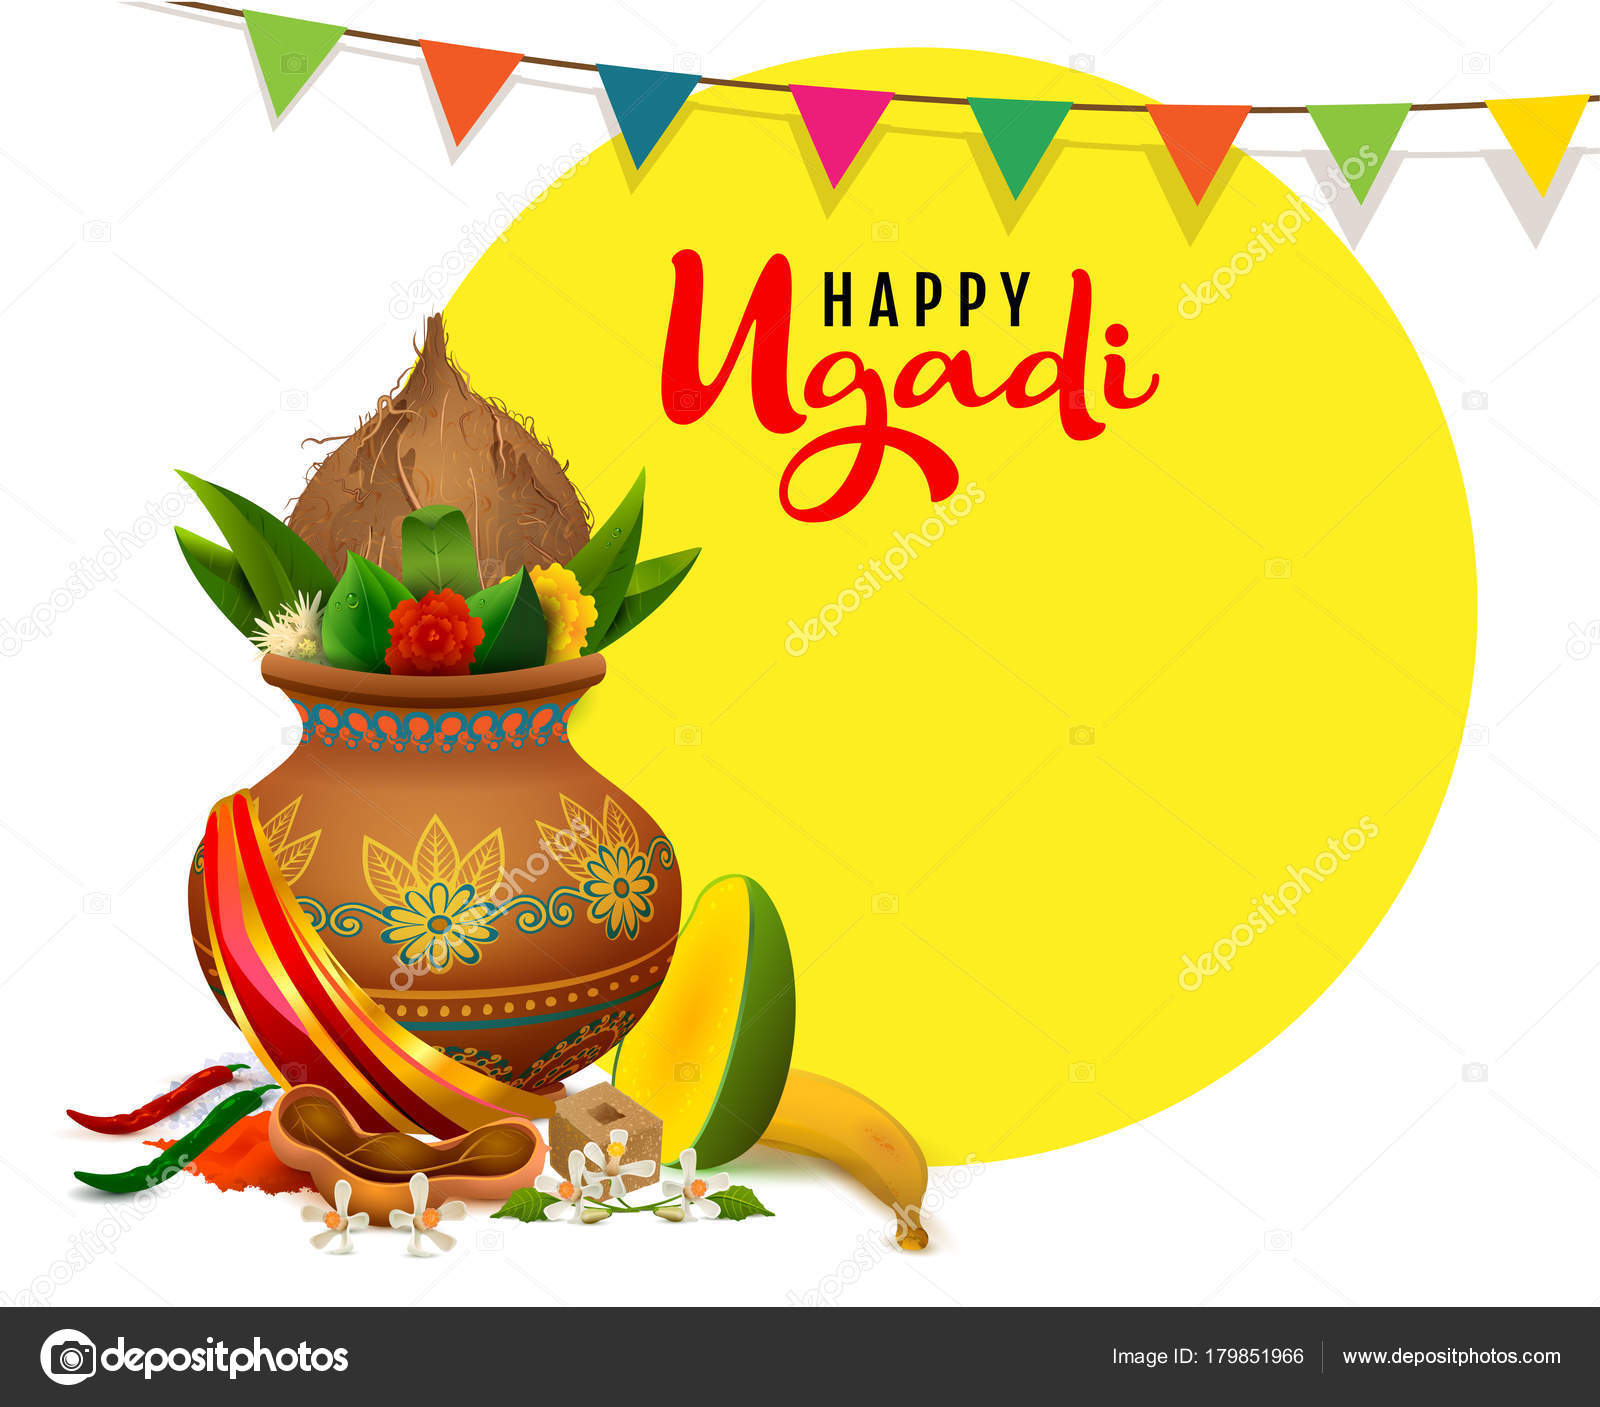 Happy ugadi greeting card text indian holiday traditional food in happy ugadi greeting card text indian holiday traditional food in pot stock vector kristyandbryce Images